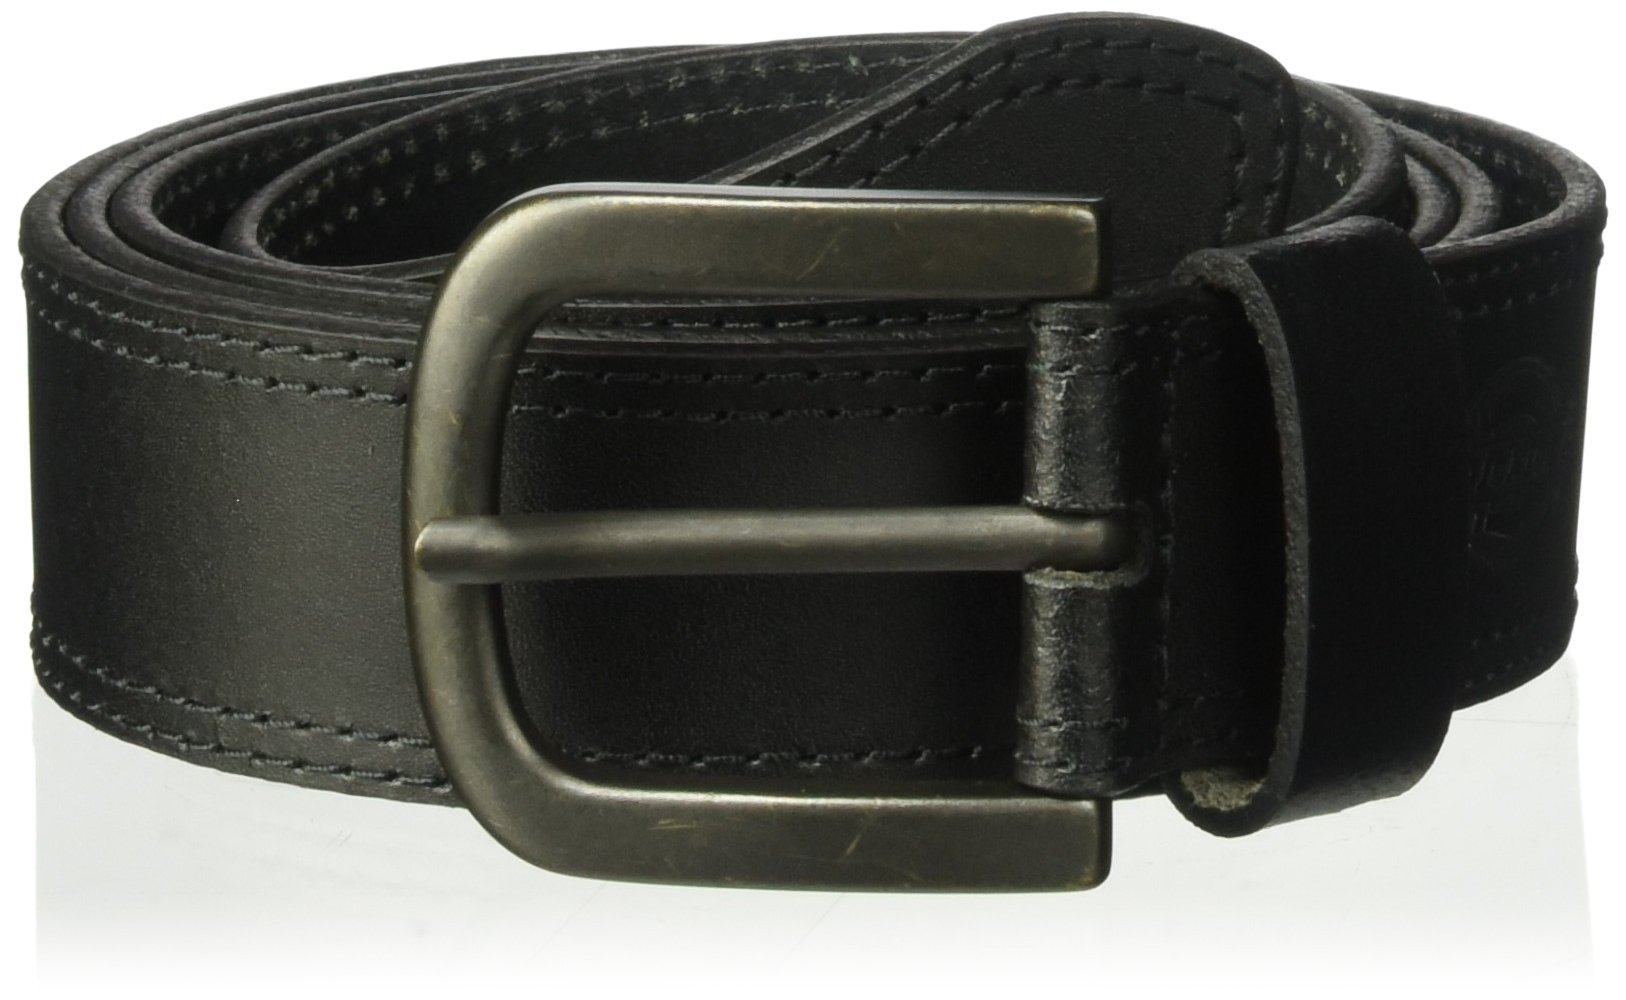 Dickies 100% Leather Jeans Belt with Stitch Design and Prong Buckle , Black, 48